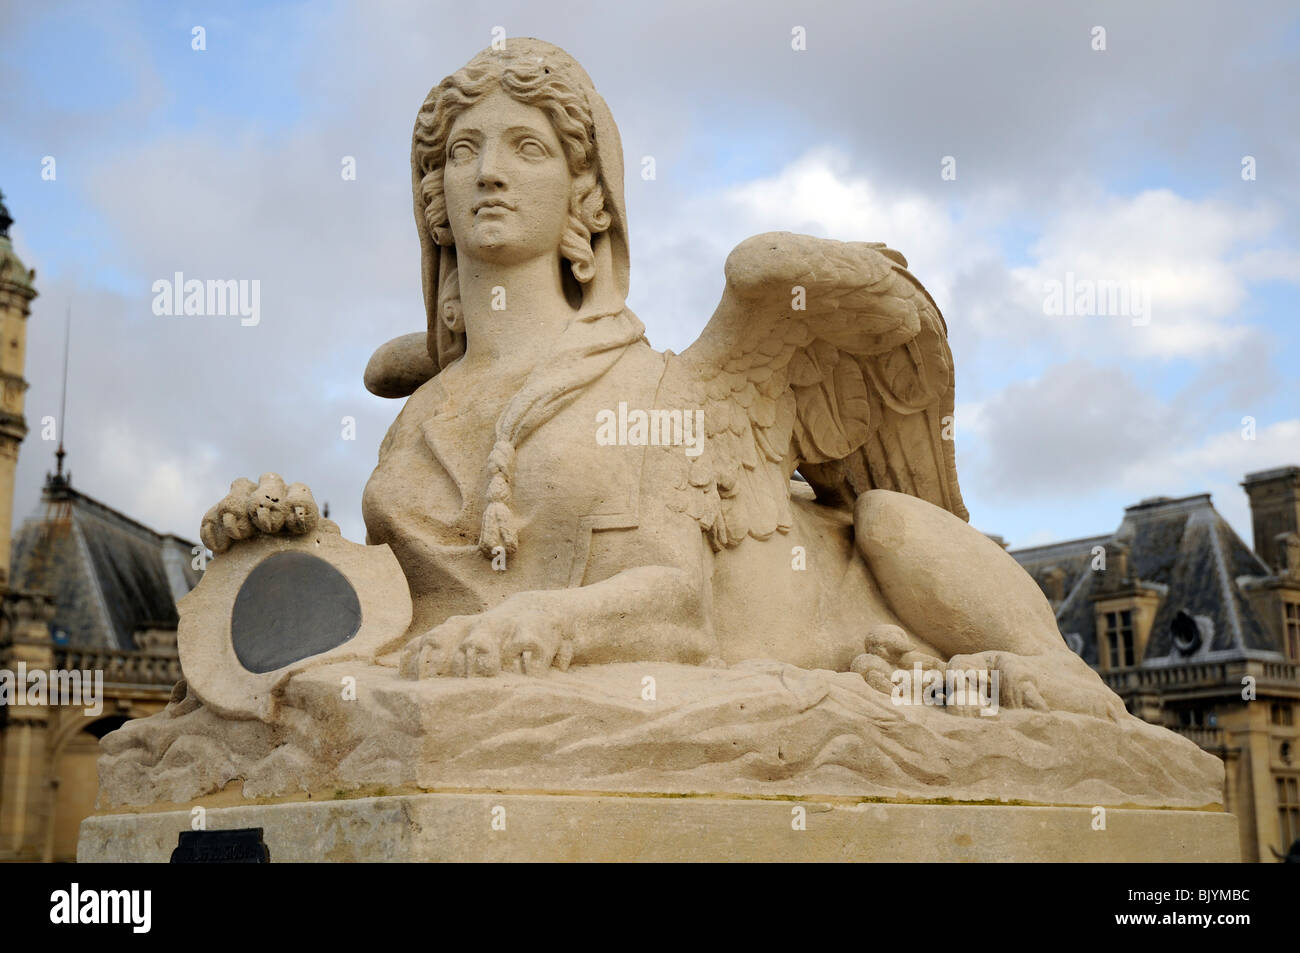 Greek Style Sphinx Statue In Garden Of Chantilly Chateau, France.